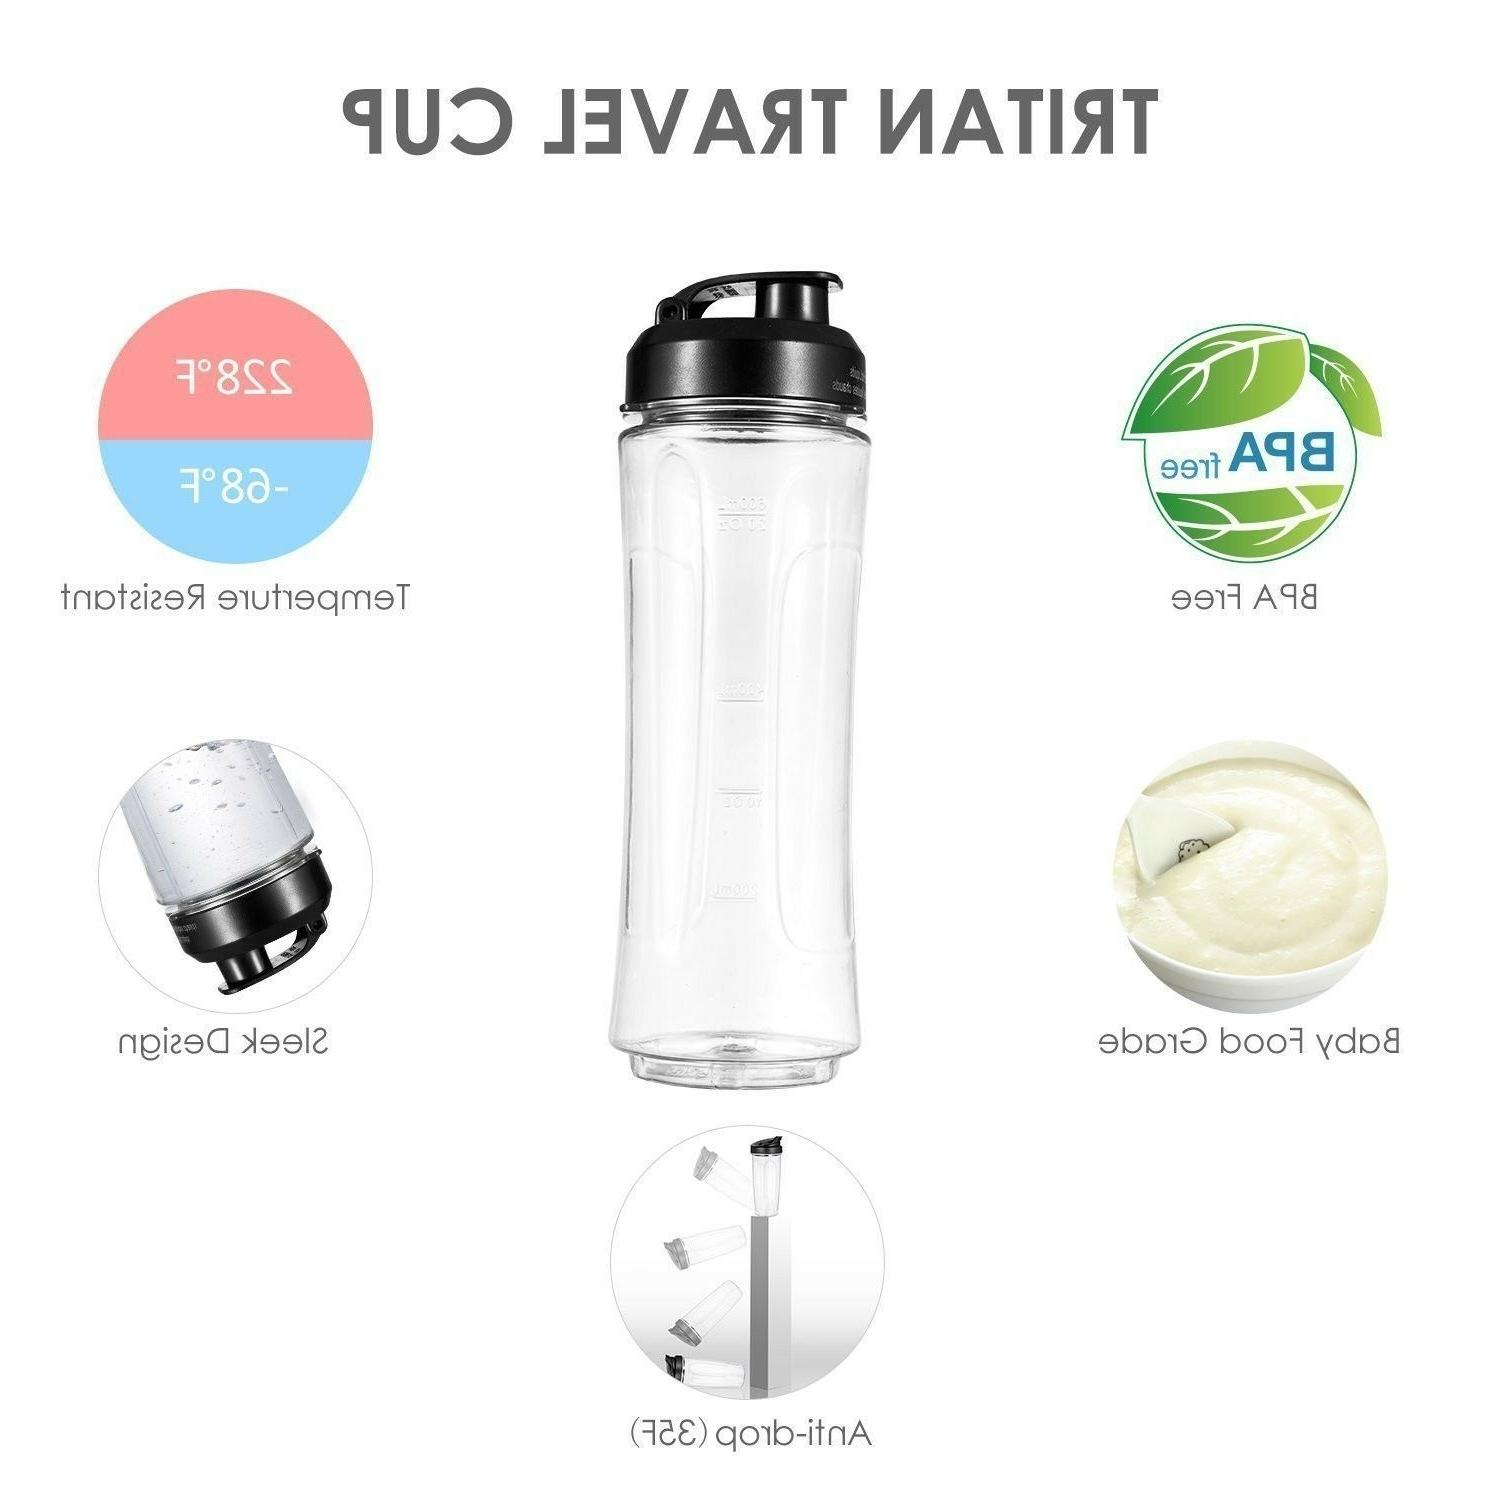 Smoothie Blender Personal Blenders with Bottle, Electric